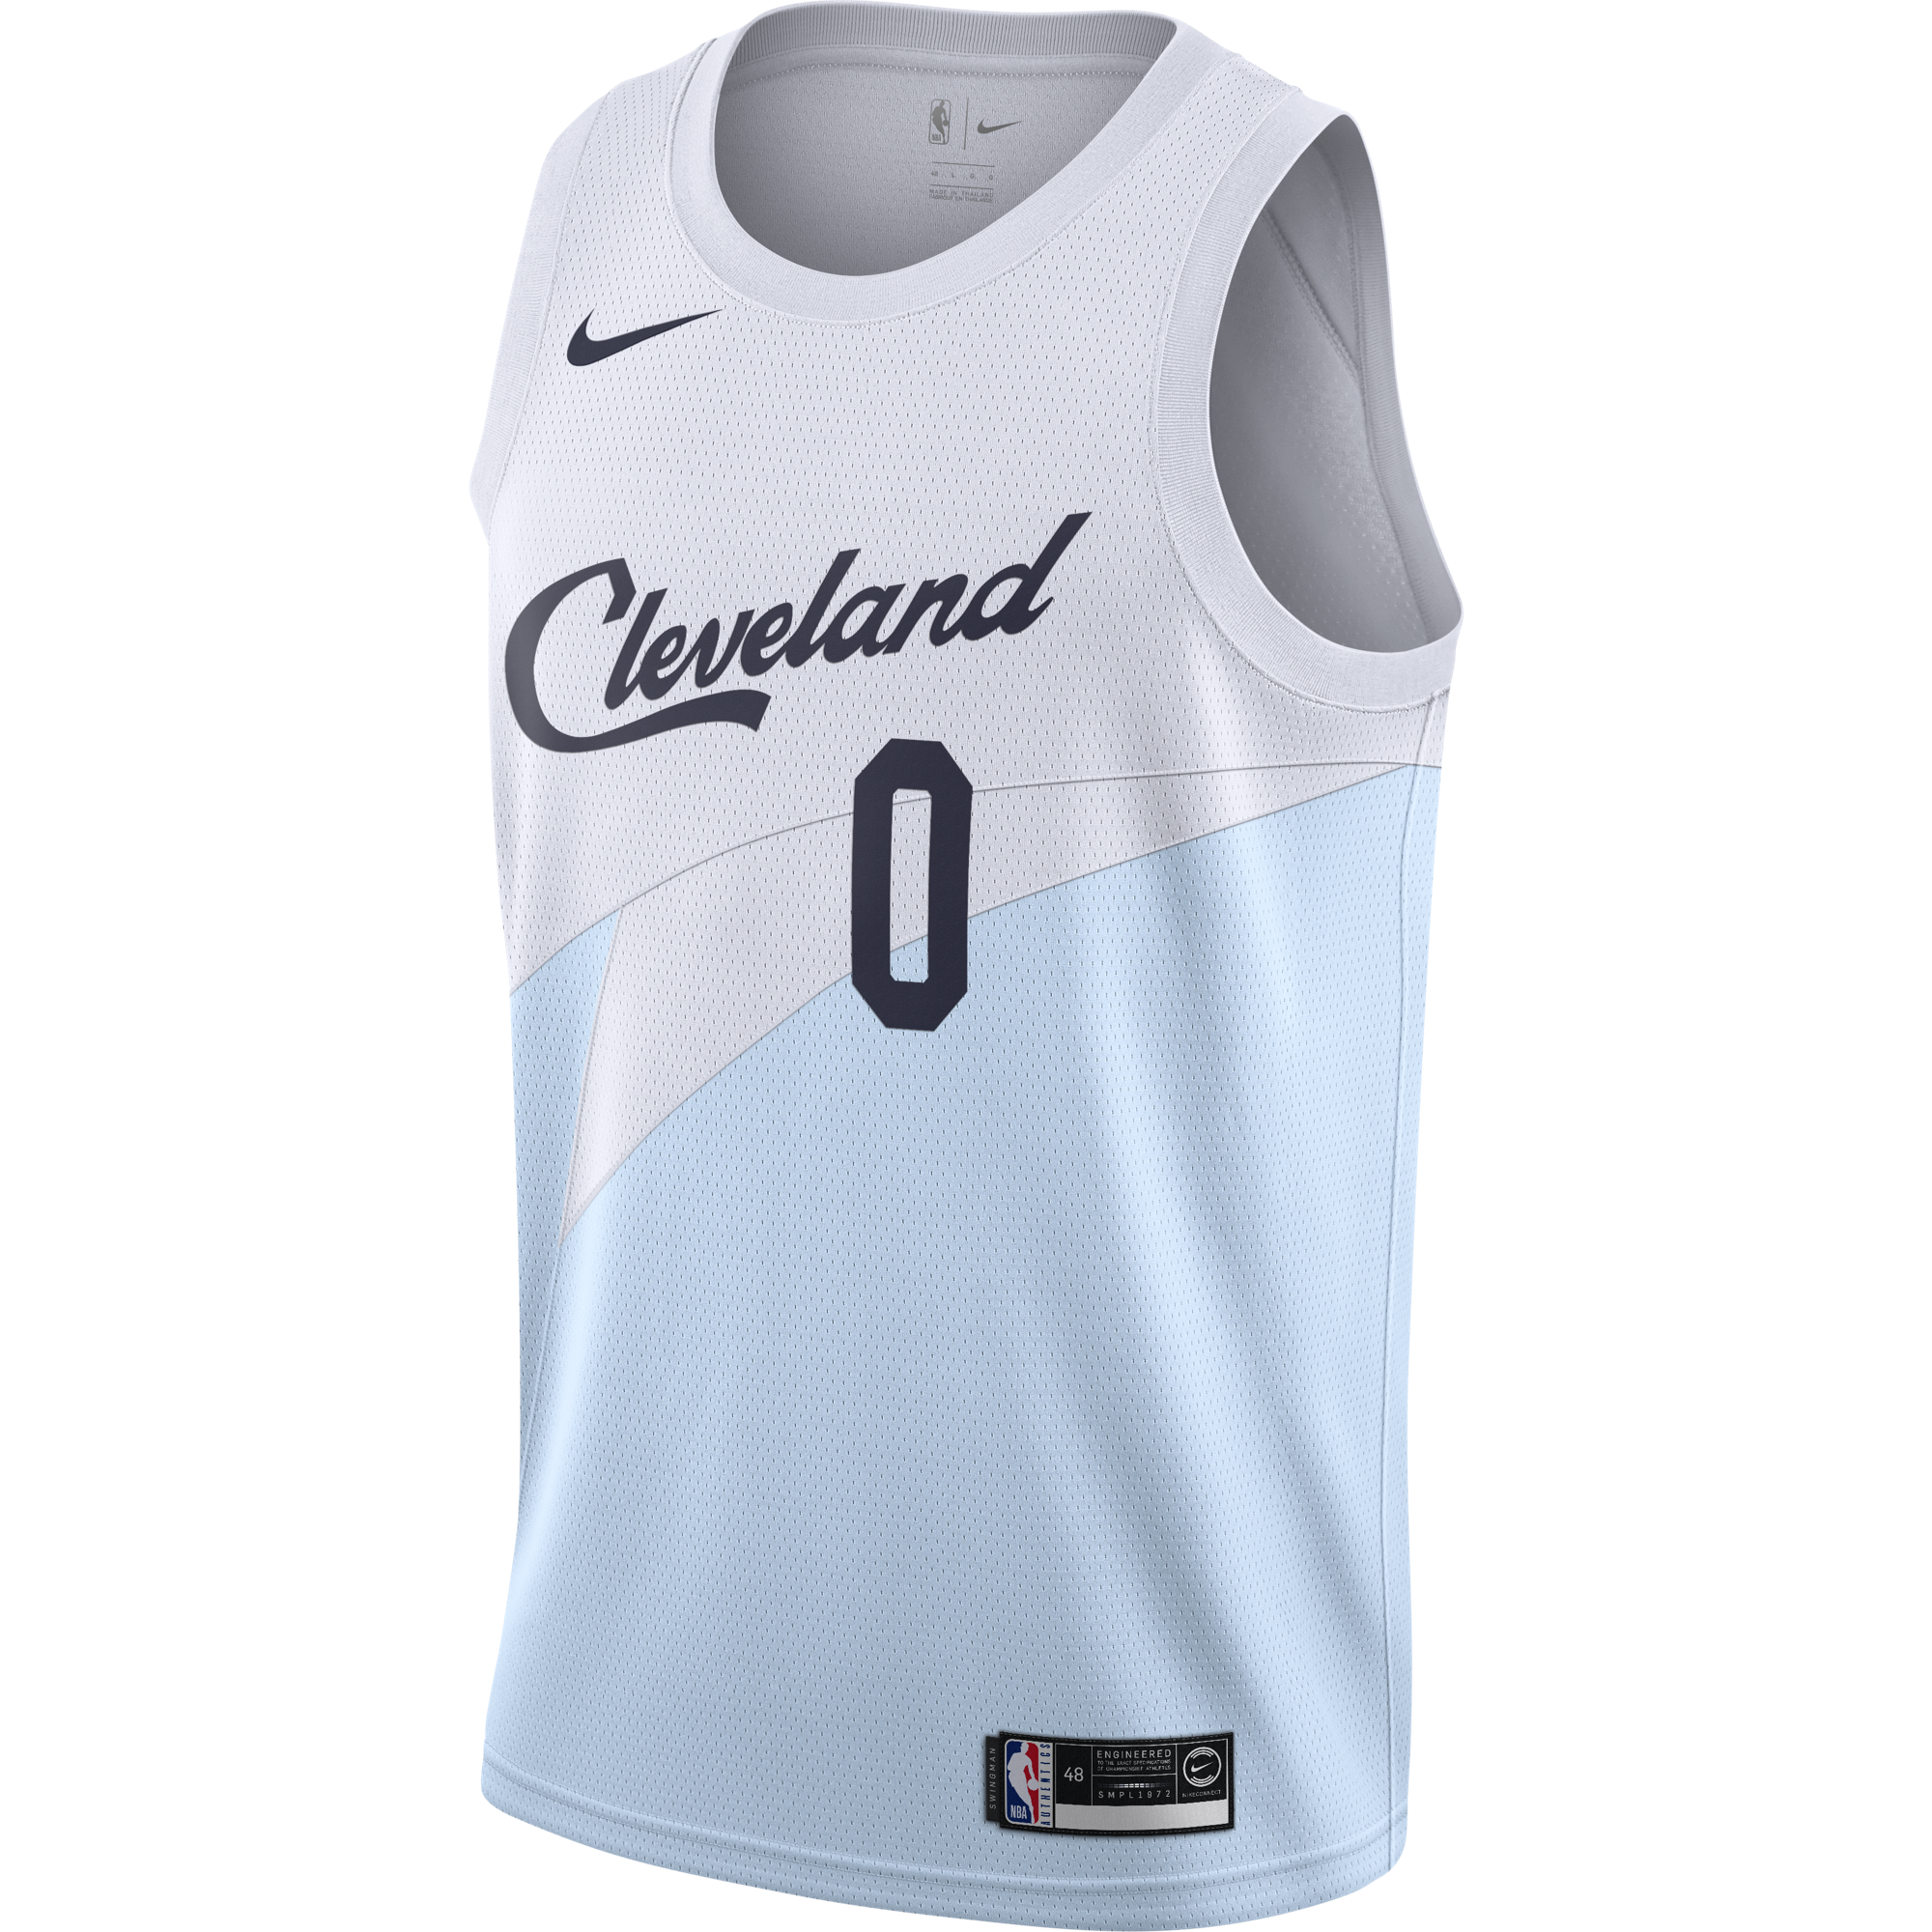 40f4cfdfc3ba NBA Earned Edition 2018  The jerseys and merch you ll want to buy ...